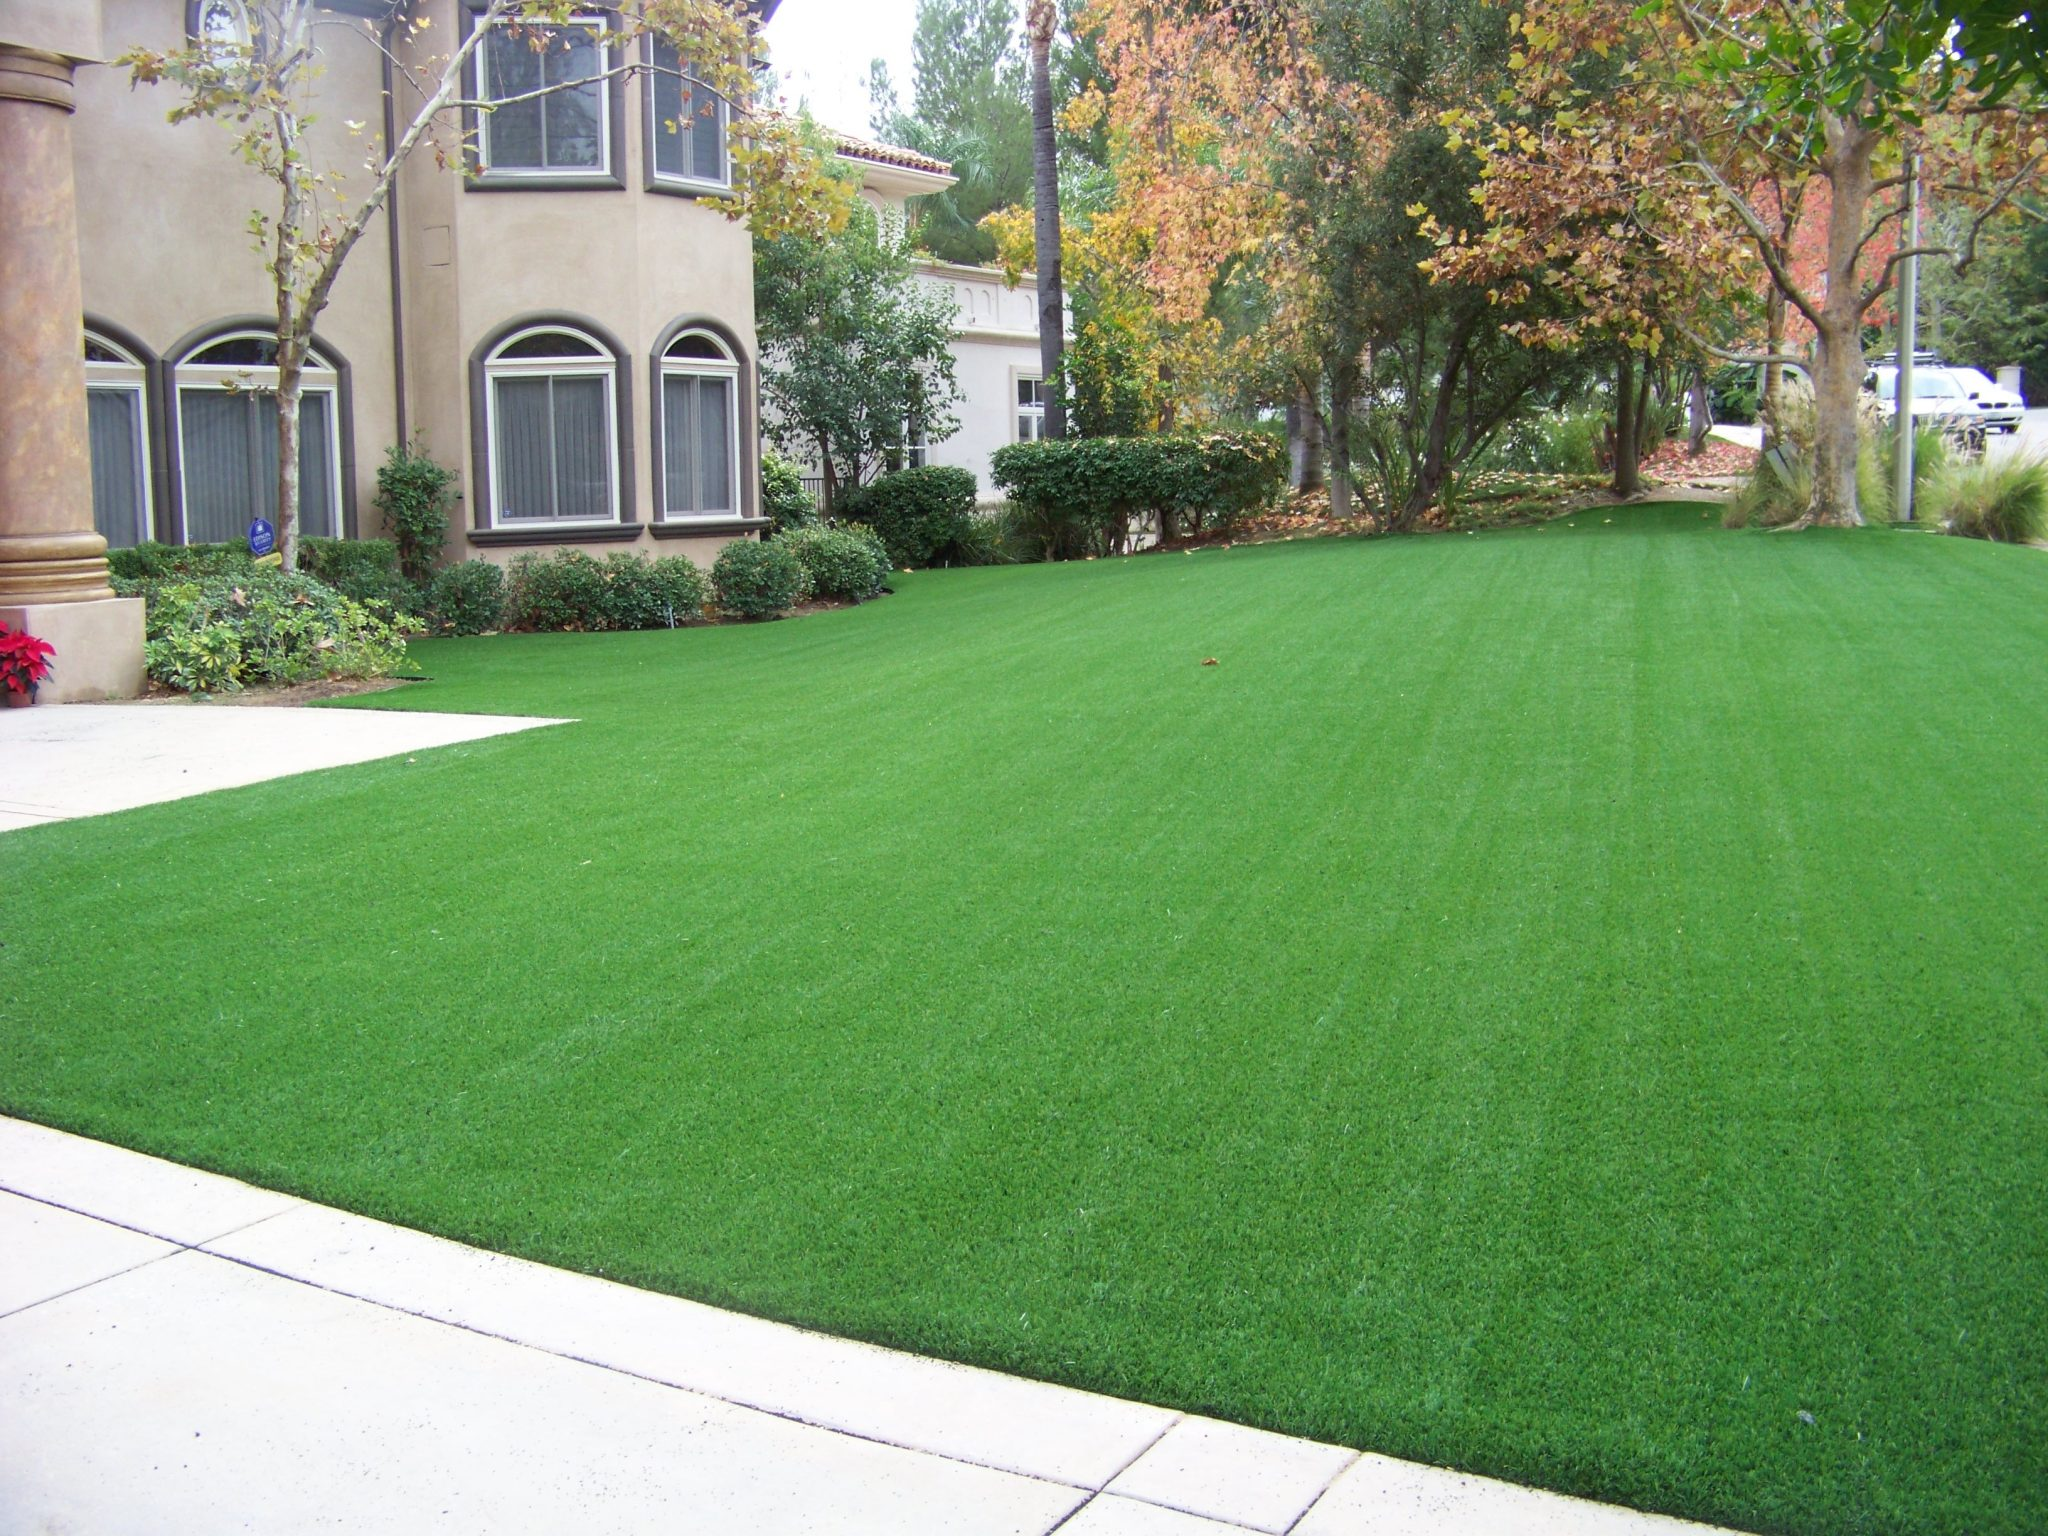 Best Artificial Grass For Backyard : syntheticturfsandiego4